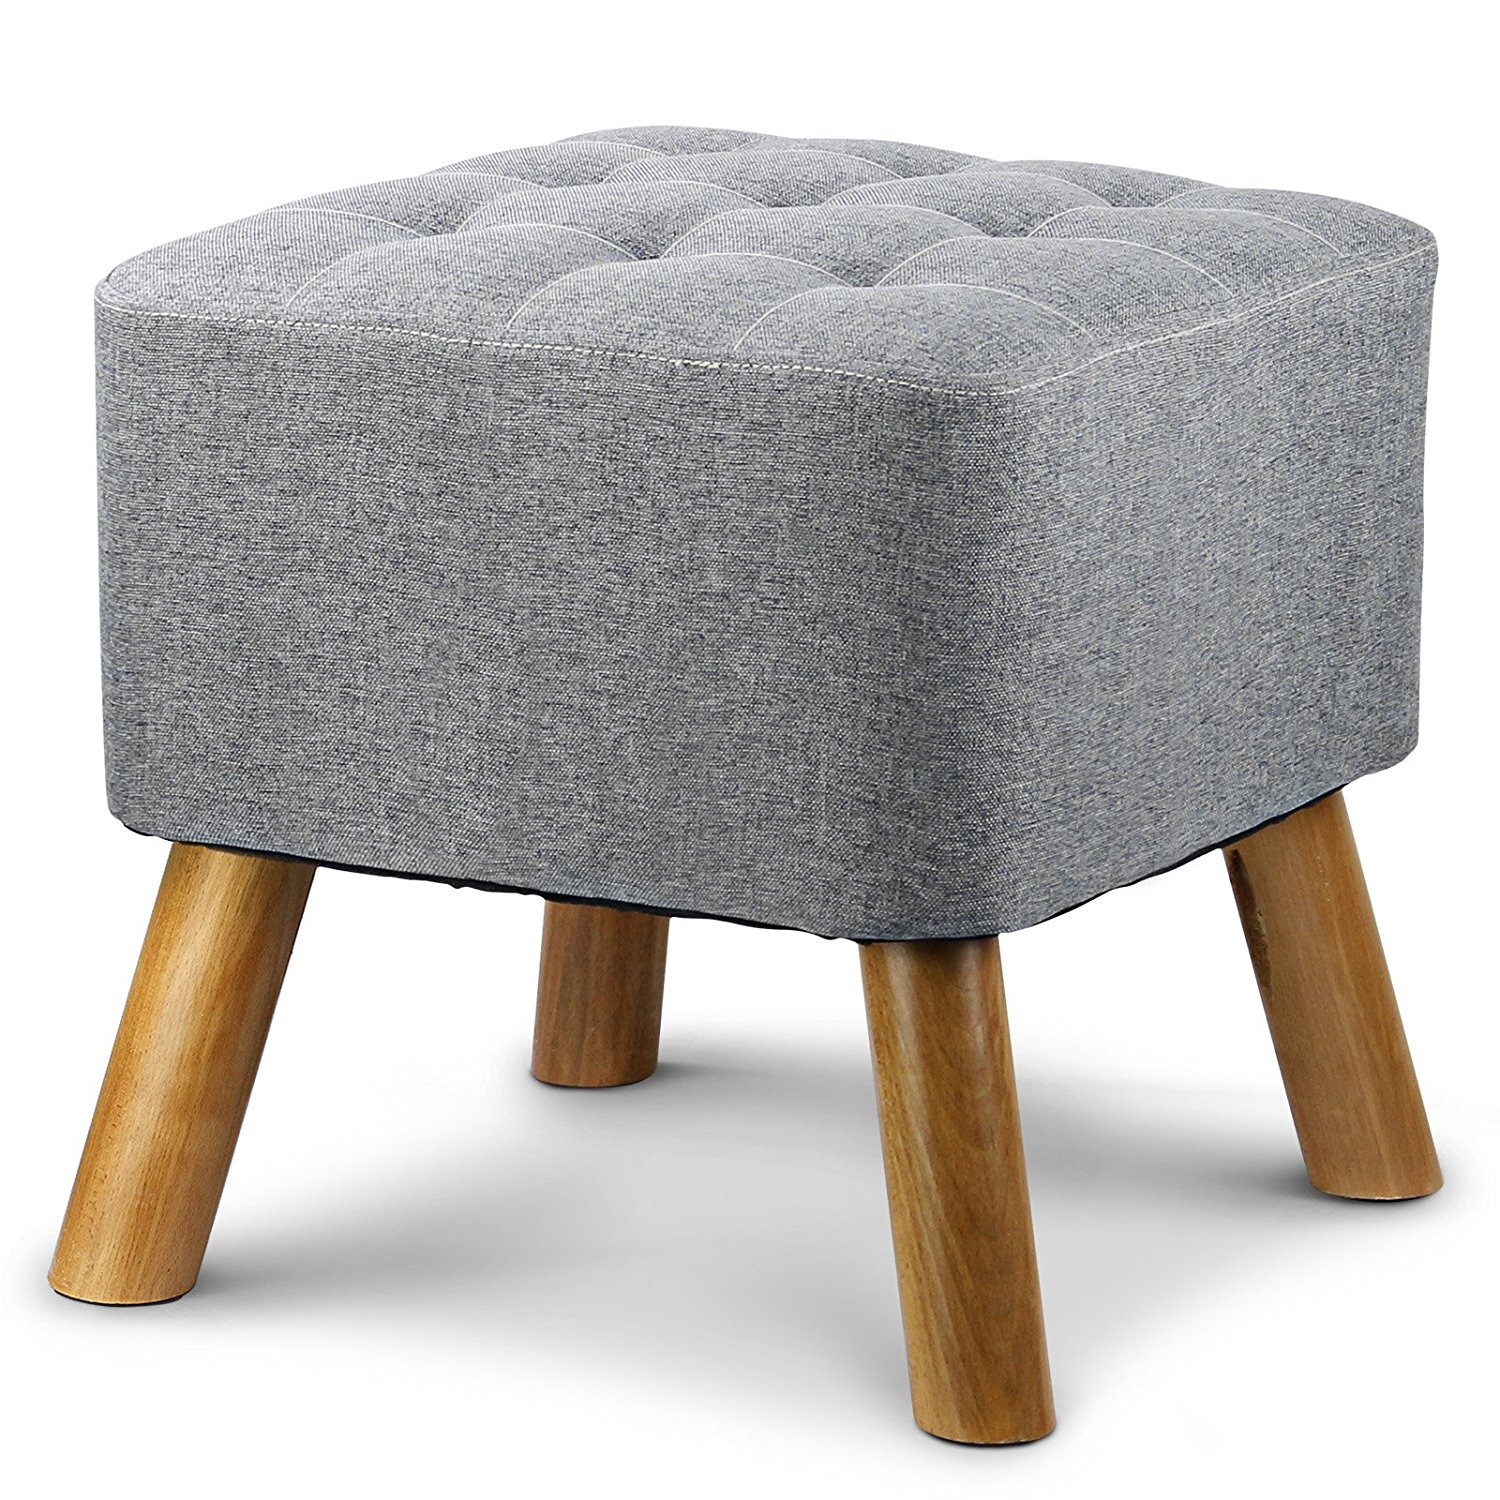 1easylife Furnishings Square Upholstered Ottoman Bench